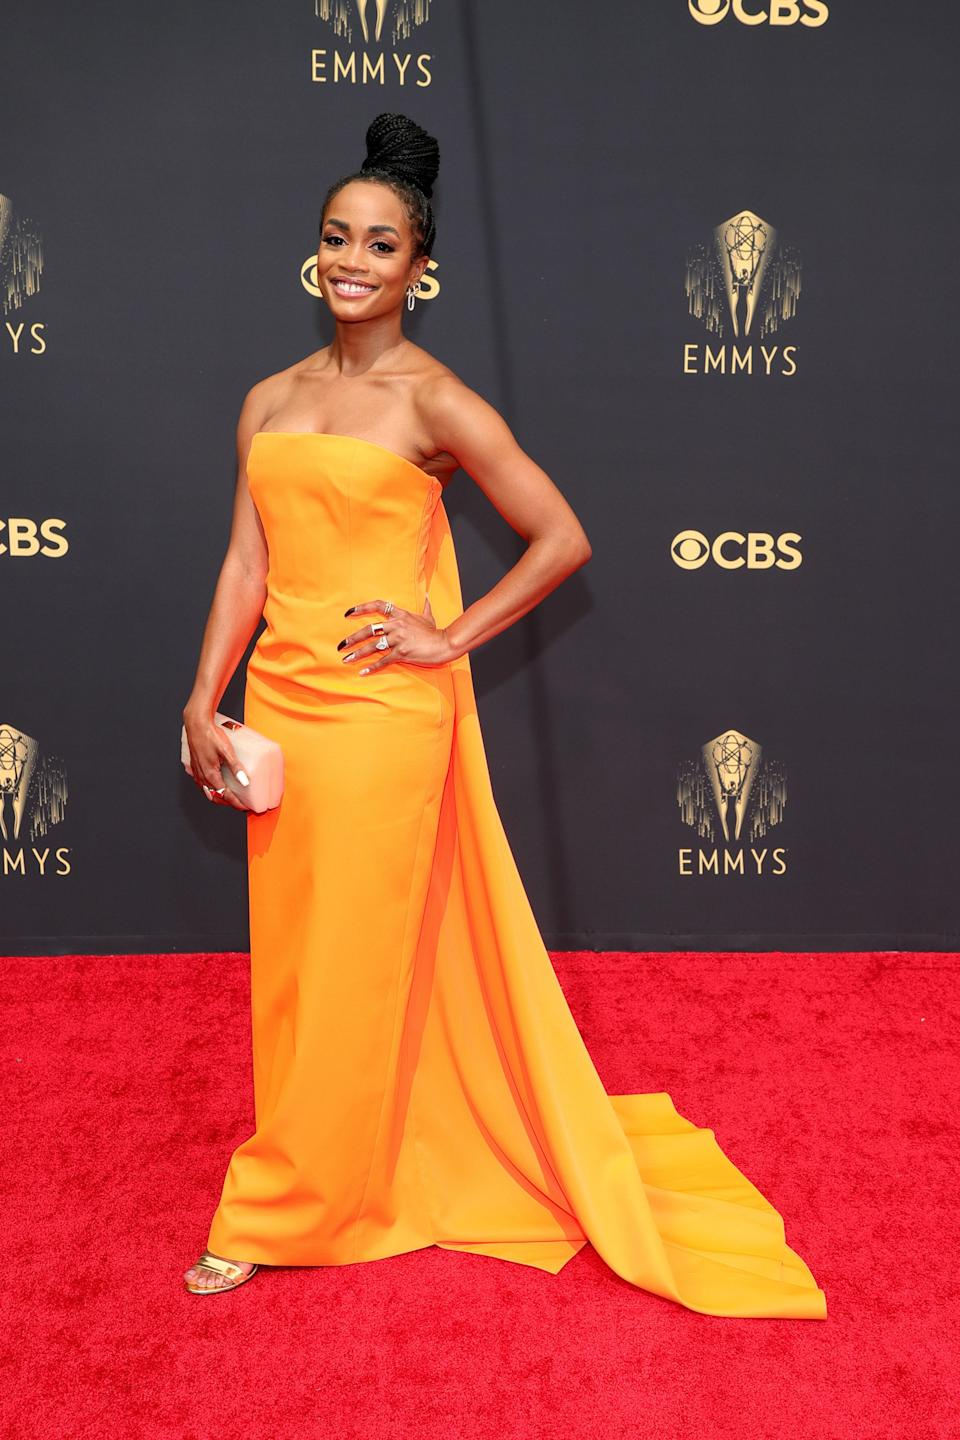 This tangerine strapless dress with a cape train by Christopher John Rogers is absolute perfection on the <em>Bachelor</em> star.